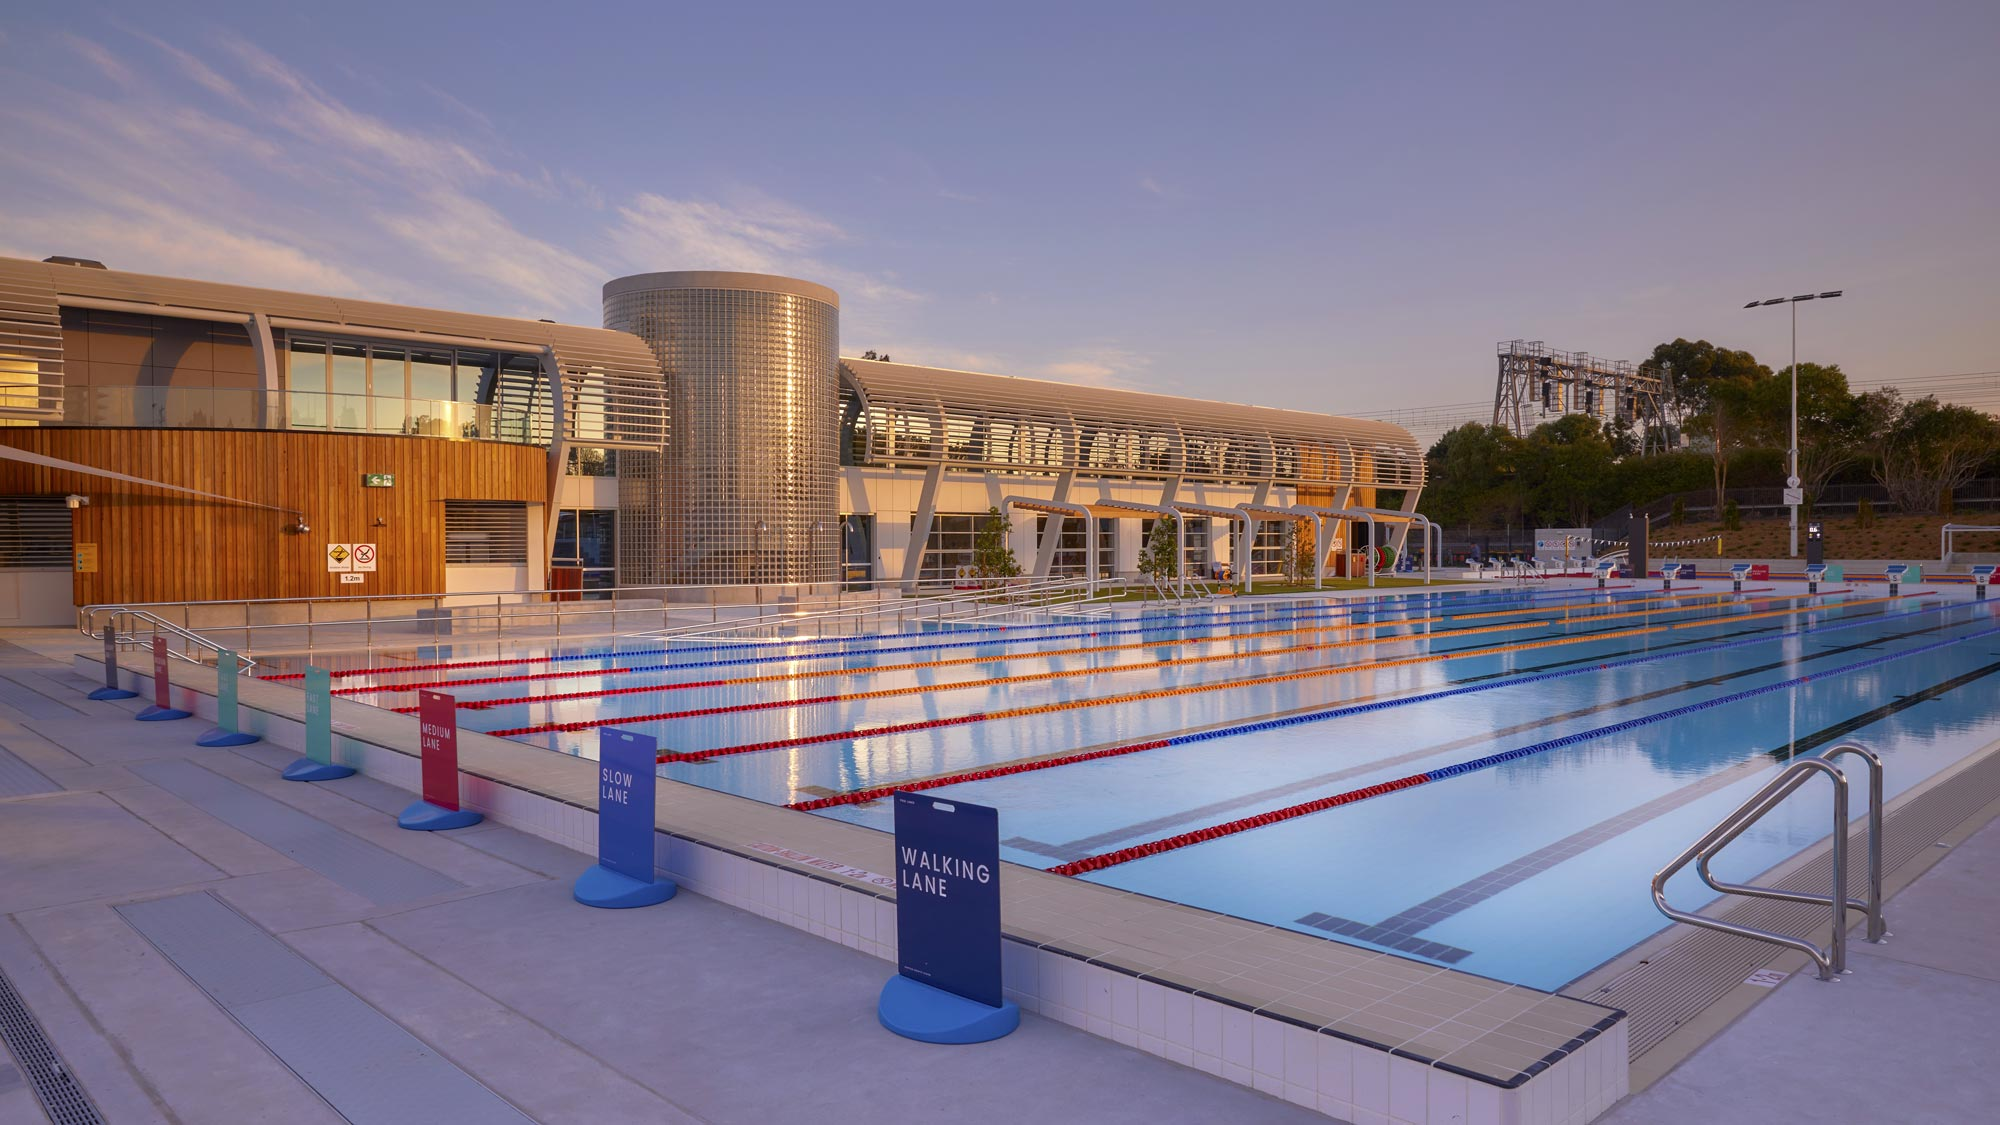 The new Ashfield Aquatic Centre officially opened to the public on 17th October 2020